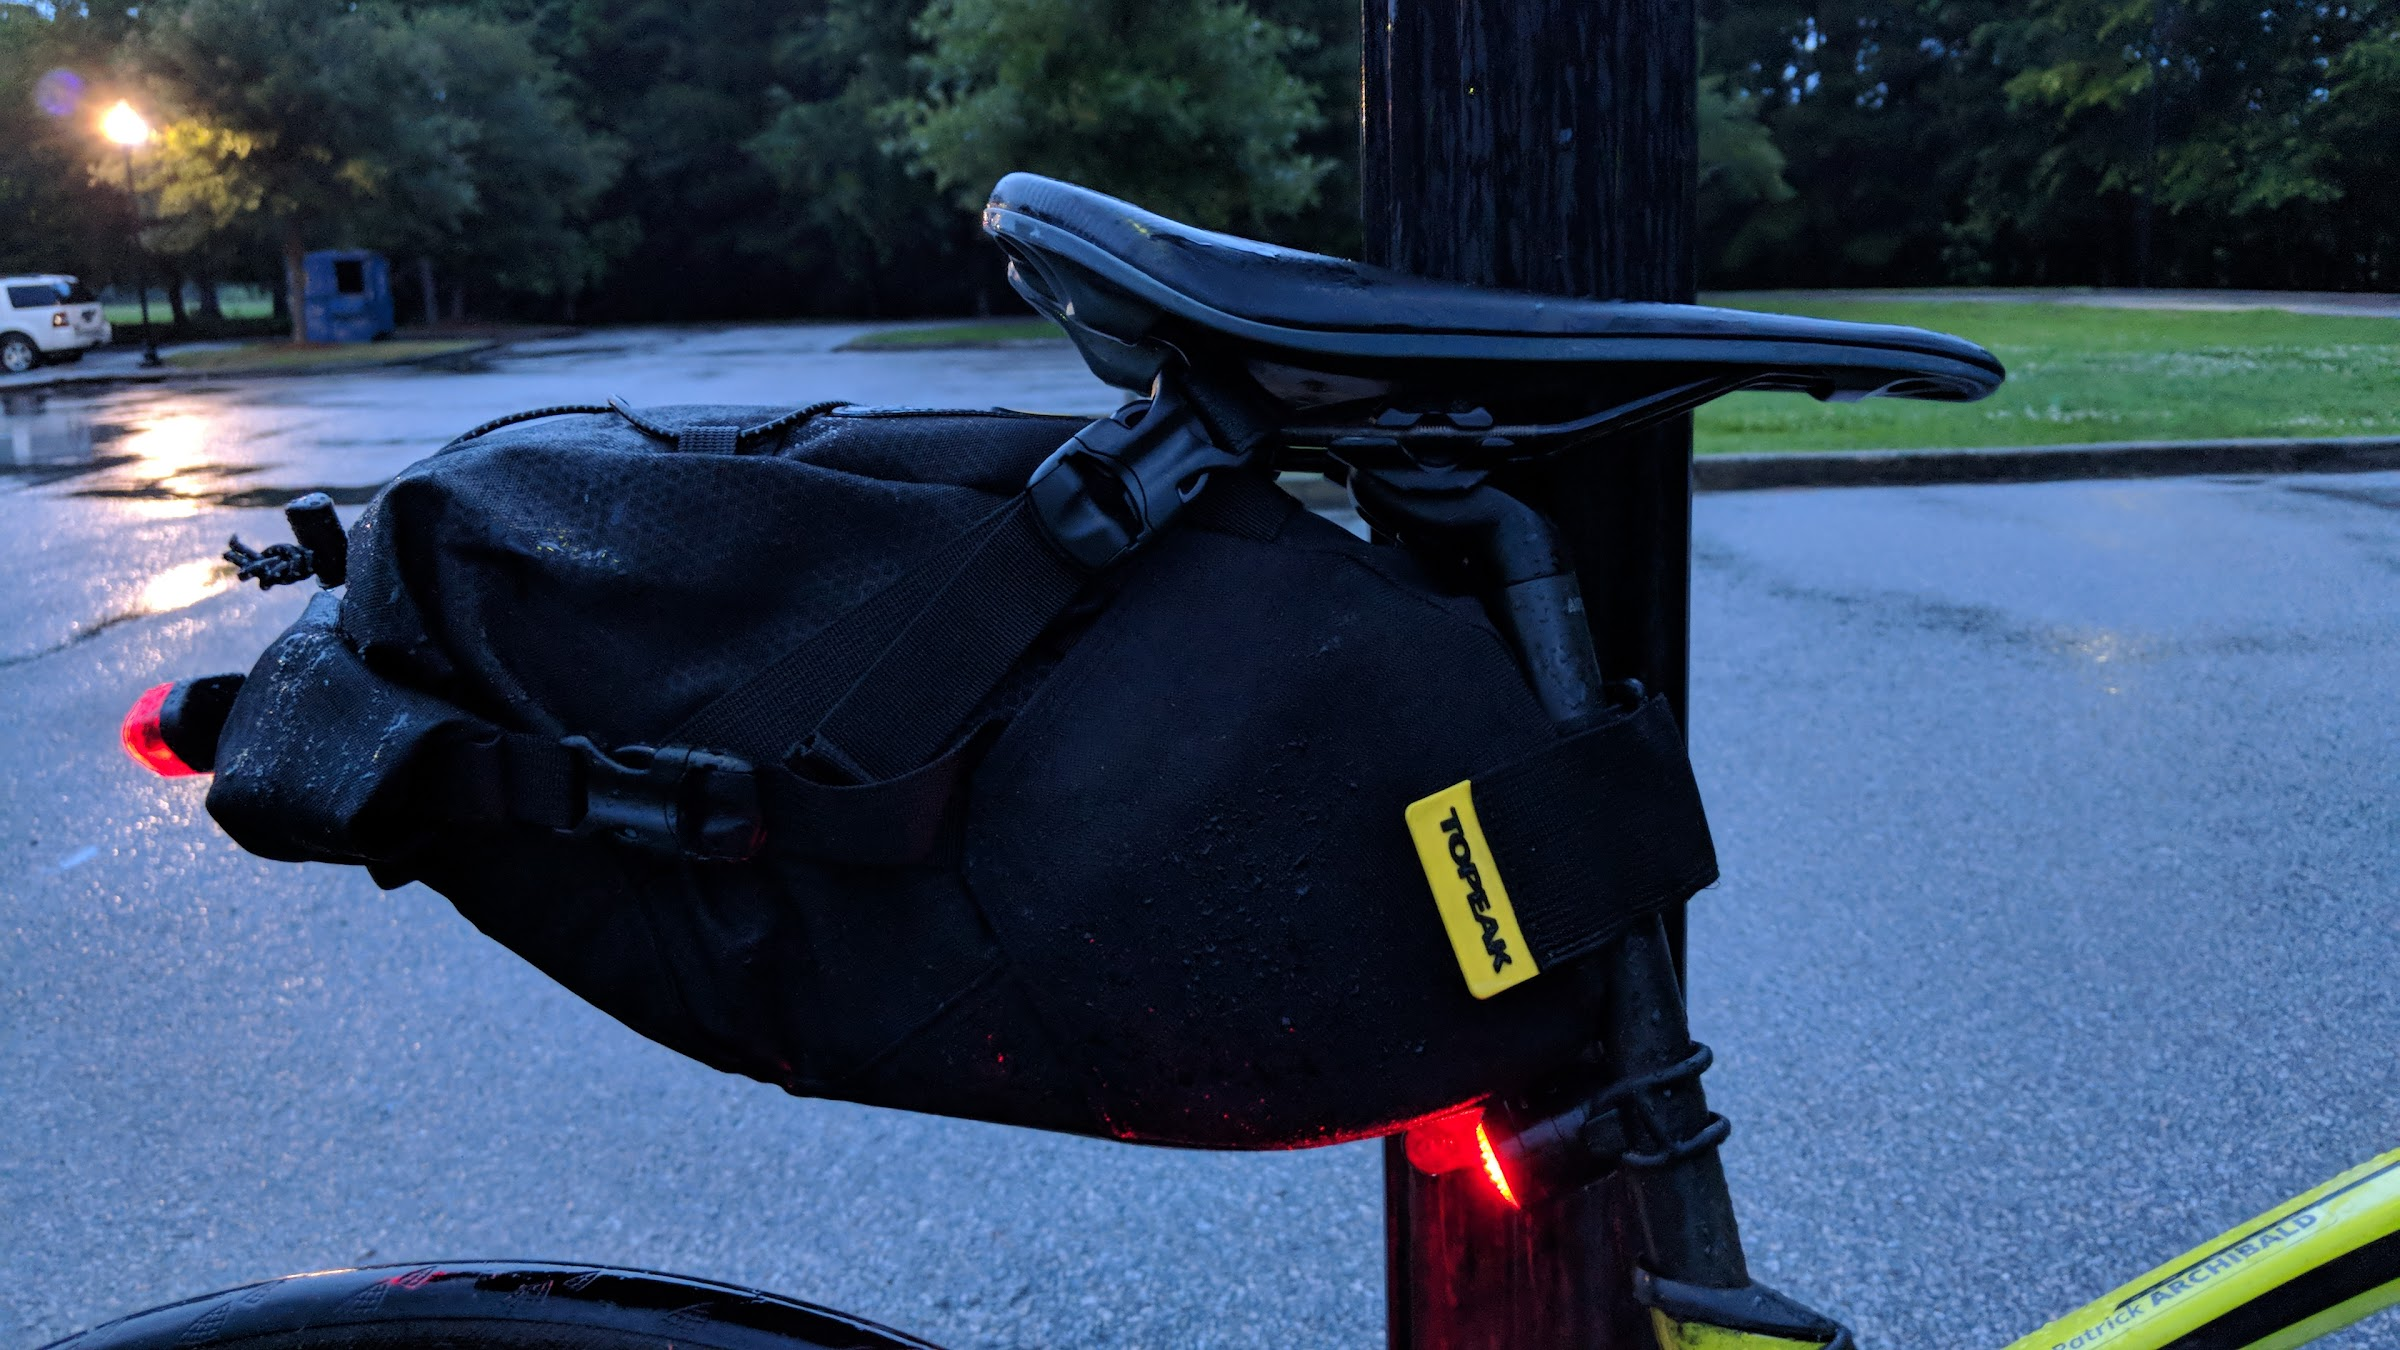 Topeak Backloader bicycle bag